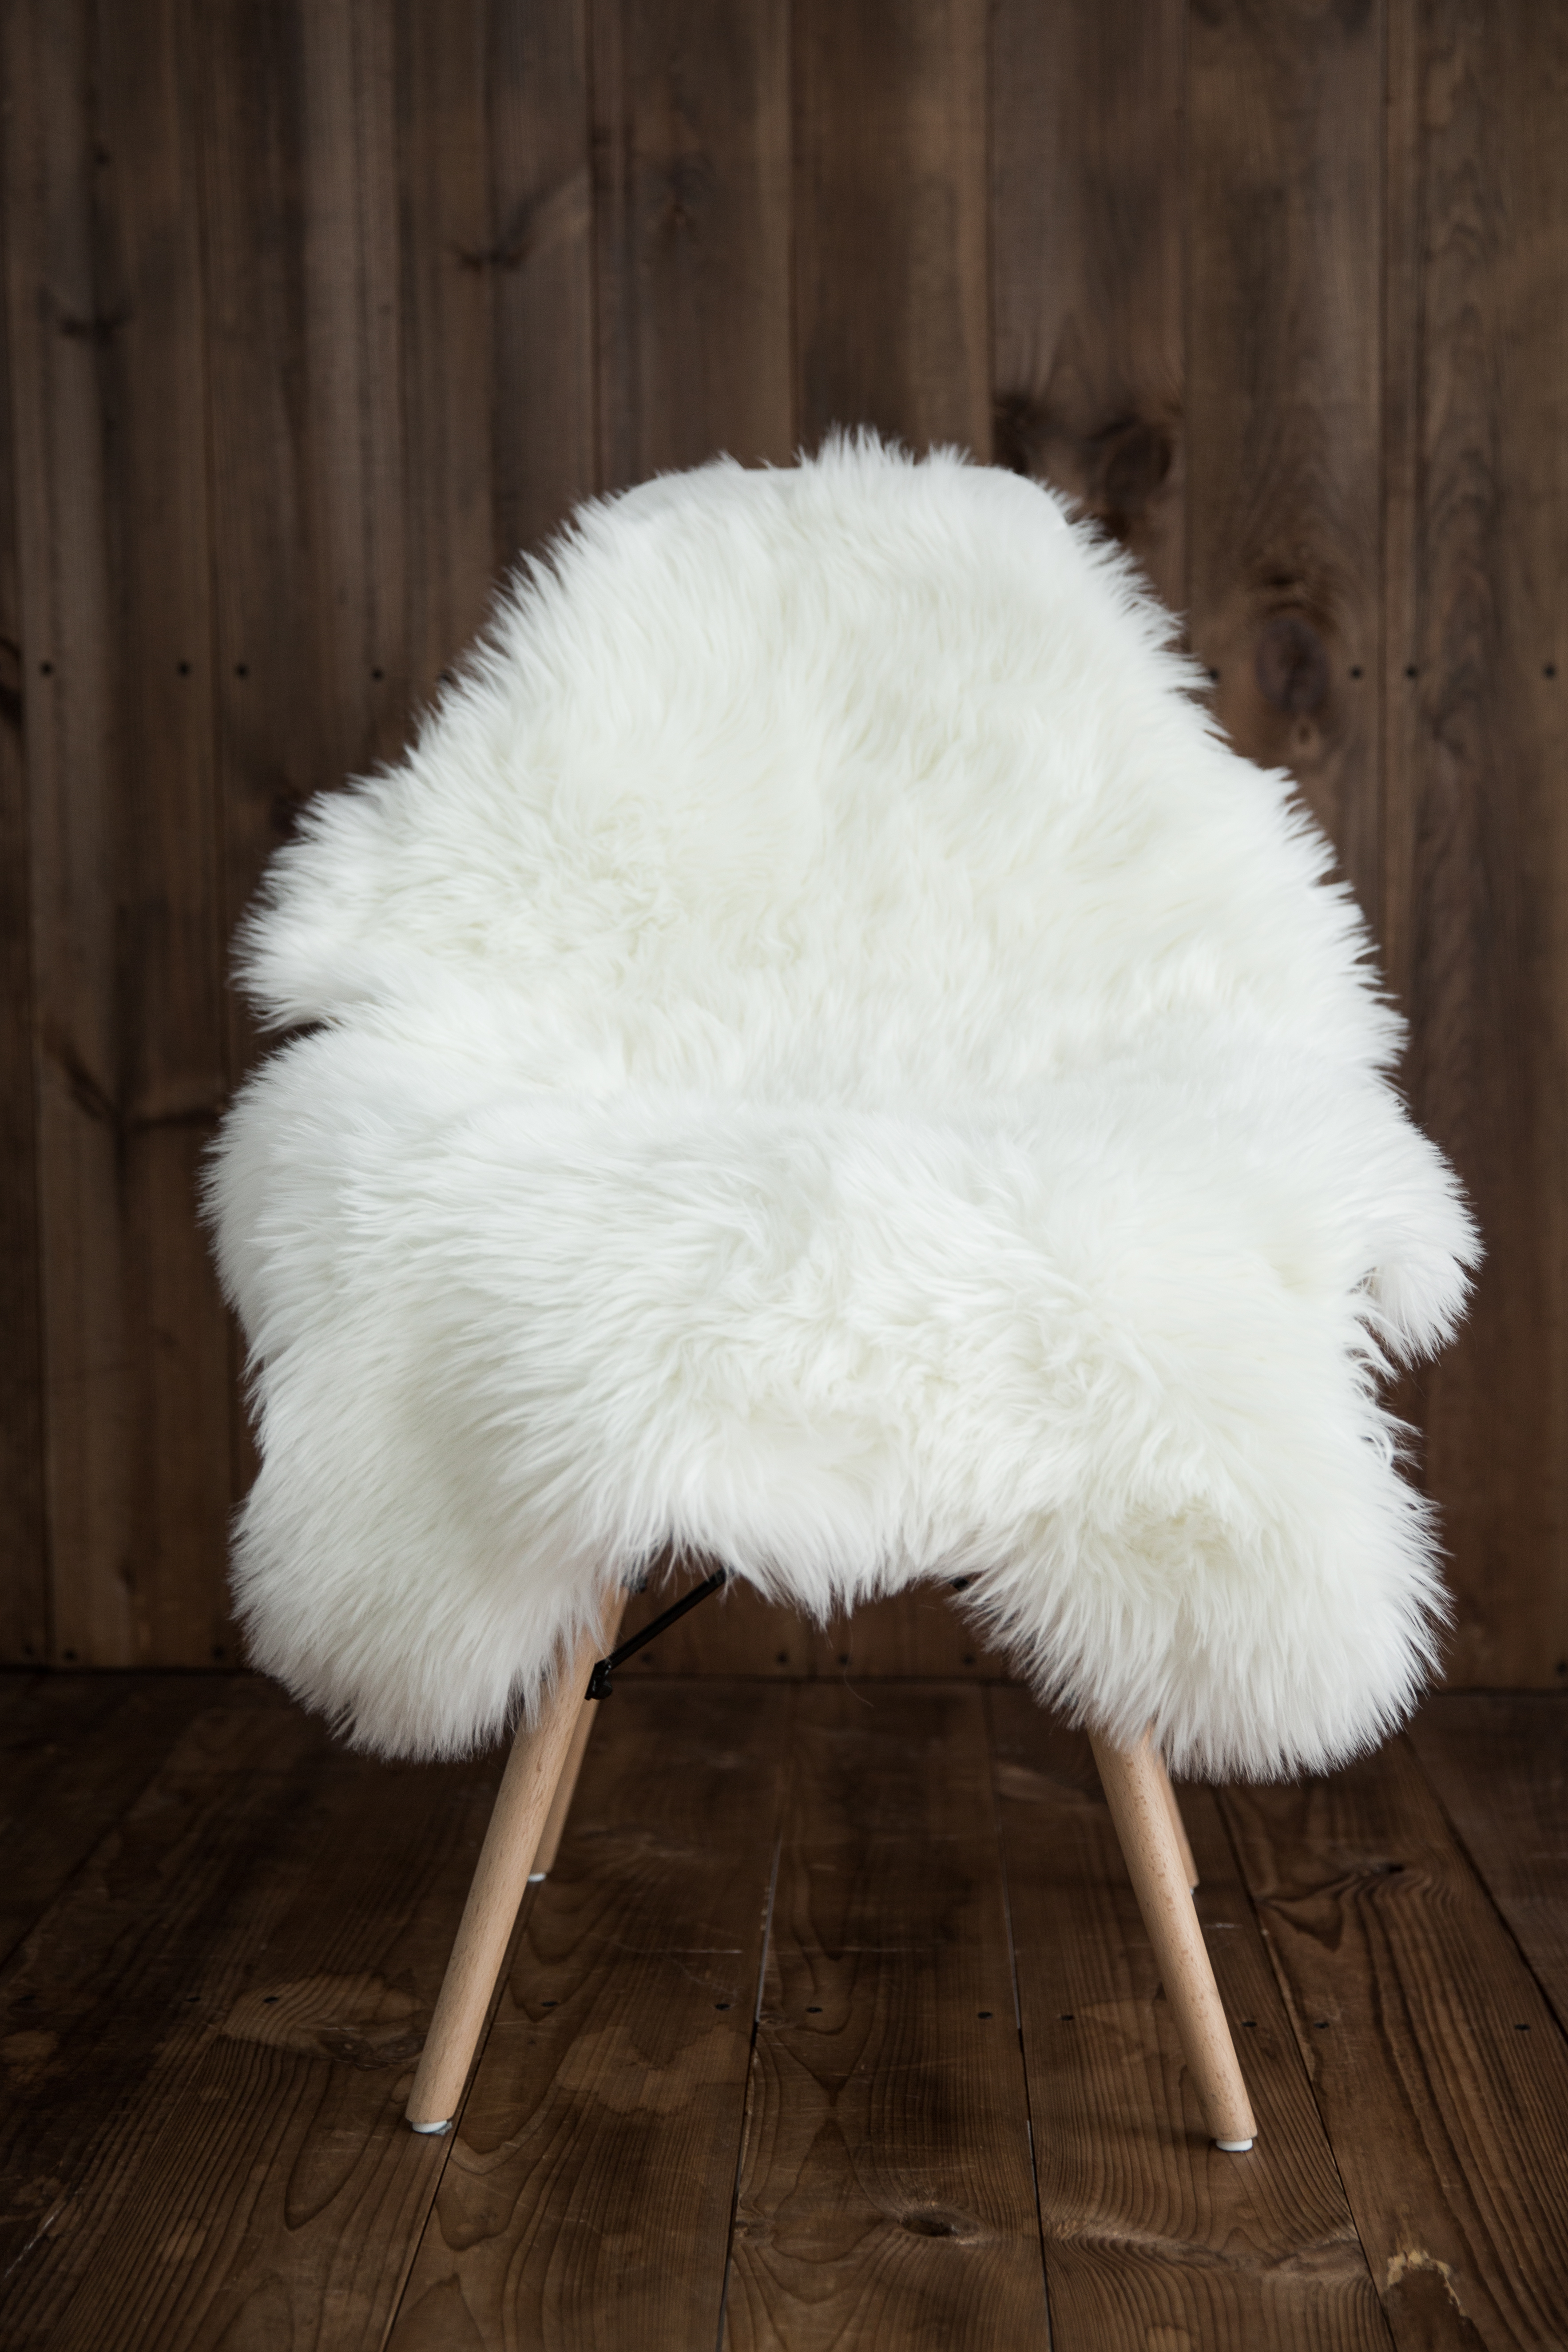 Sheepskin Faux Fur Chair Cover Rug Seat Pad Area Rugs